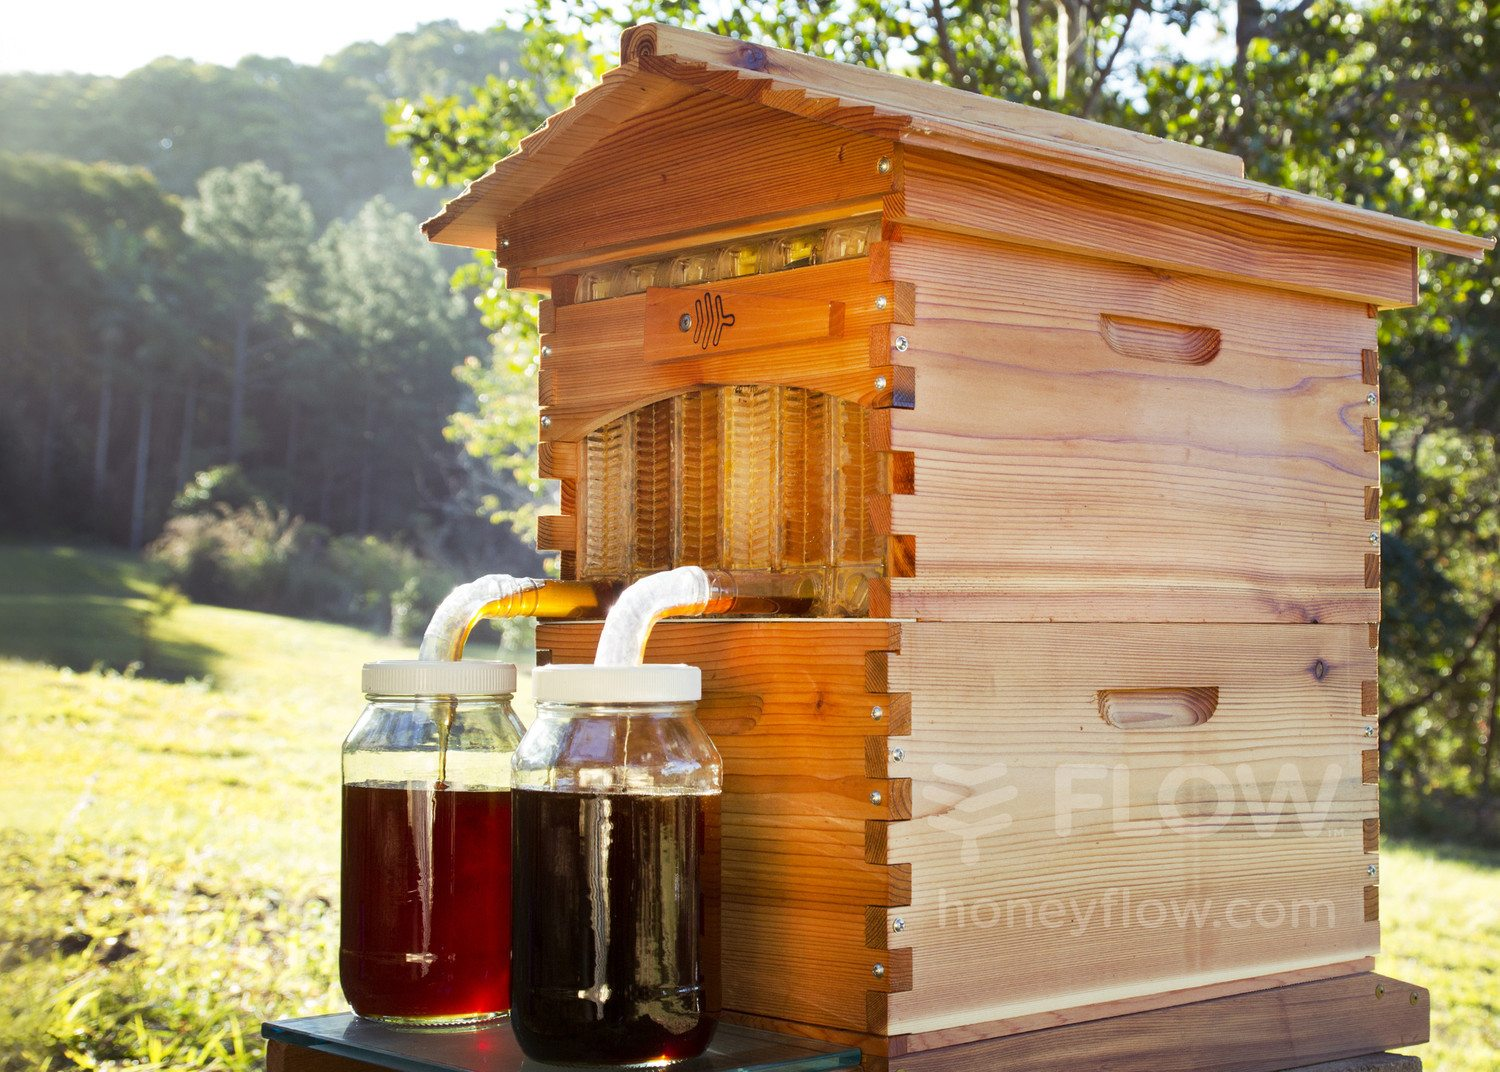 Honey On Tap Returns Controversial Bee Hive Seeks To